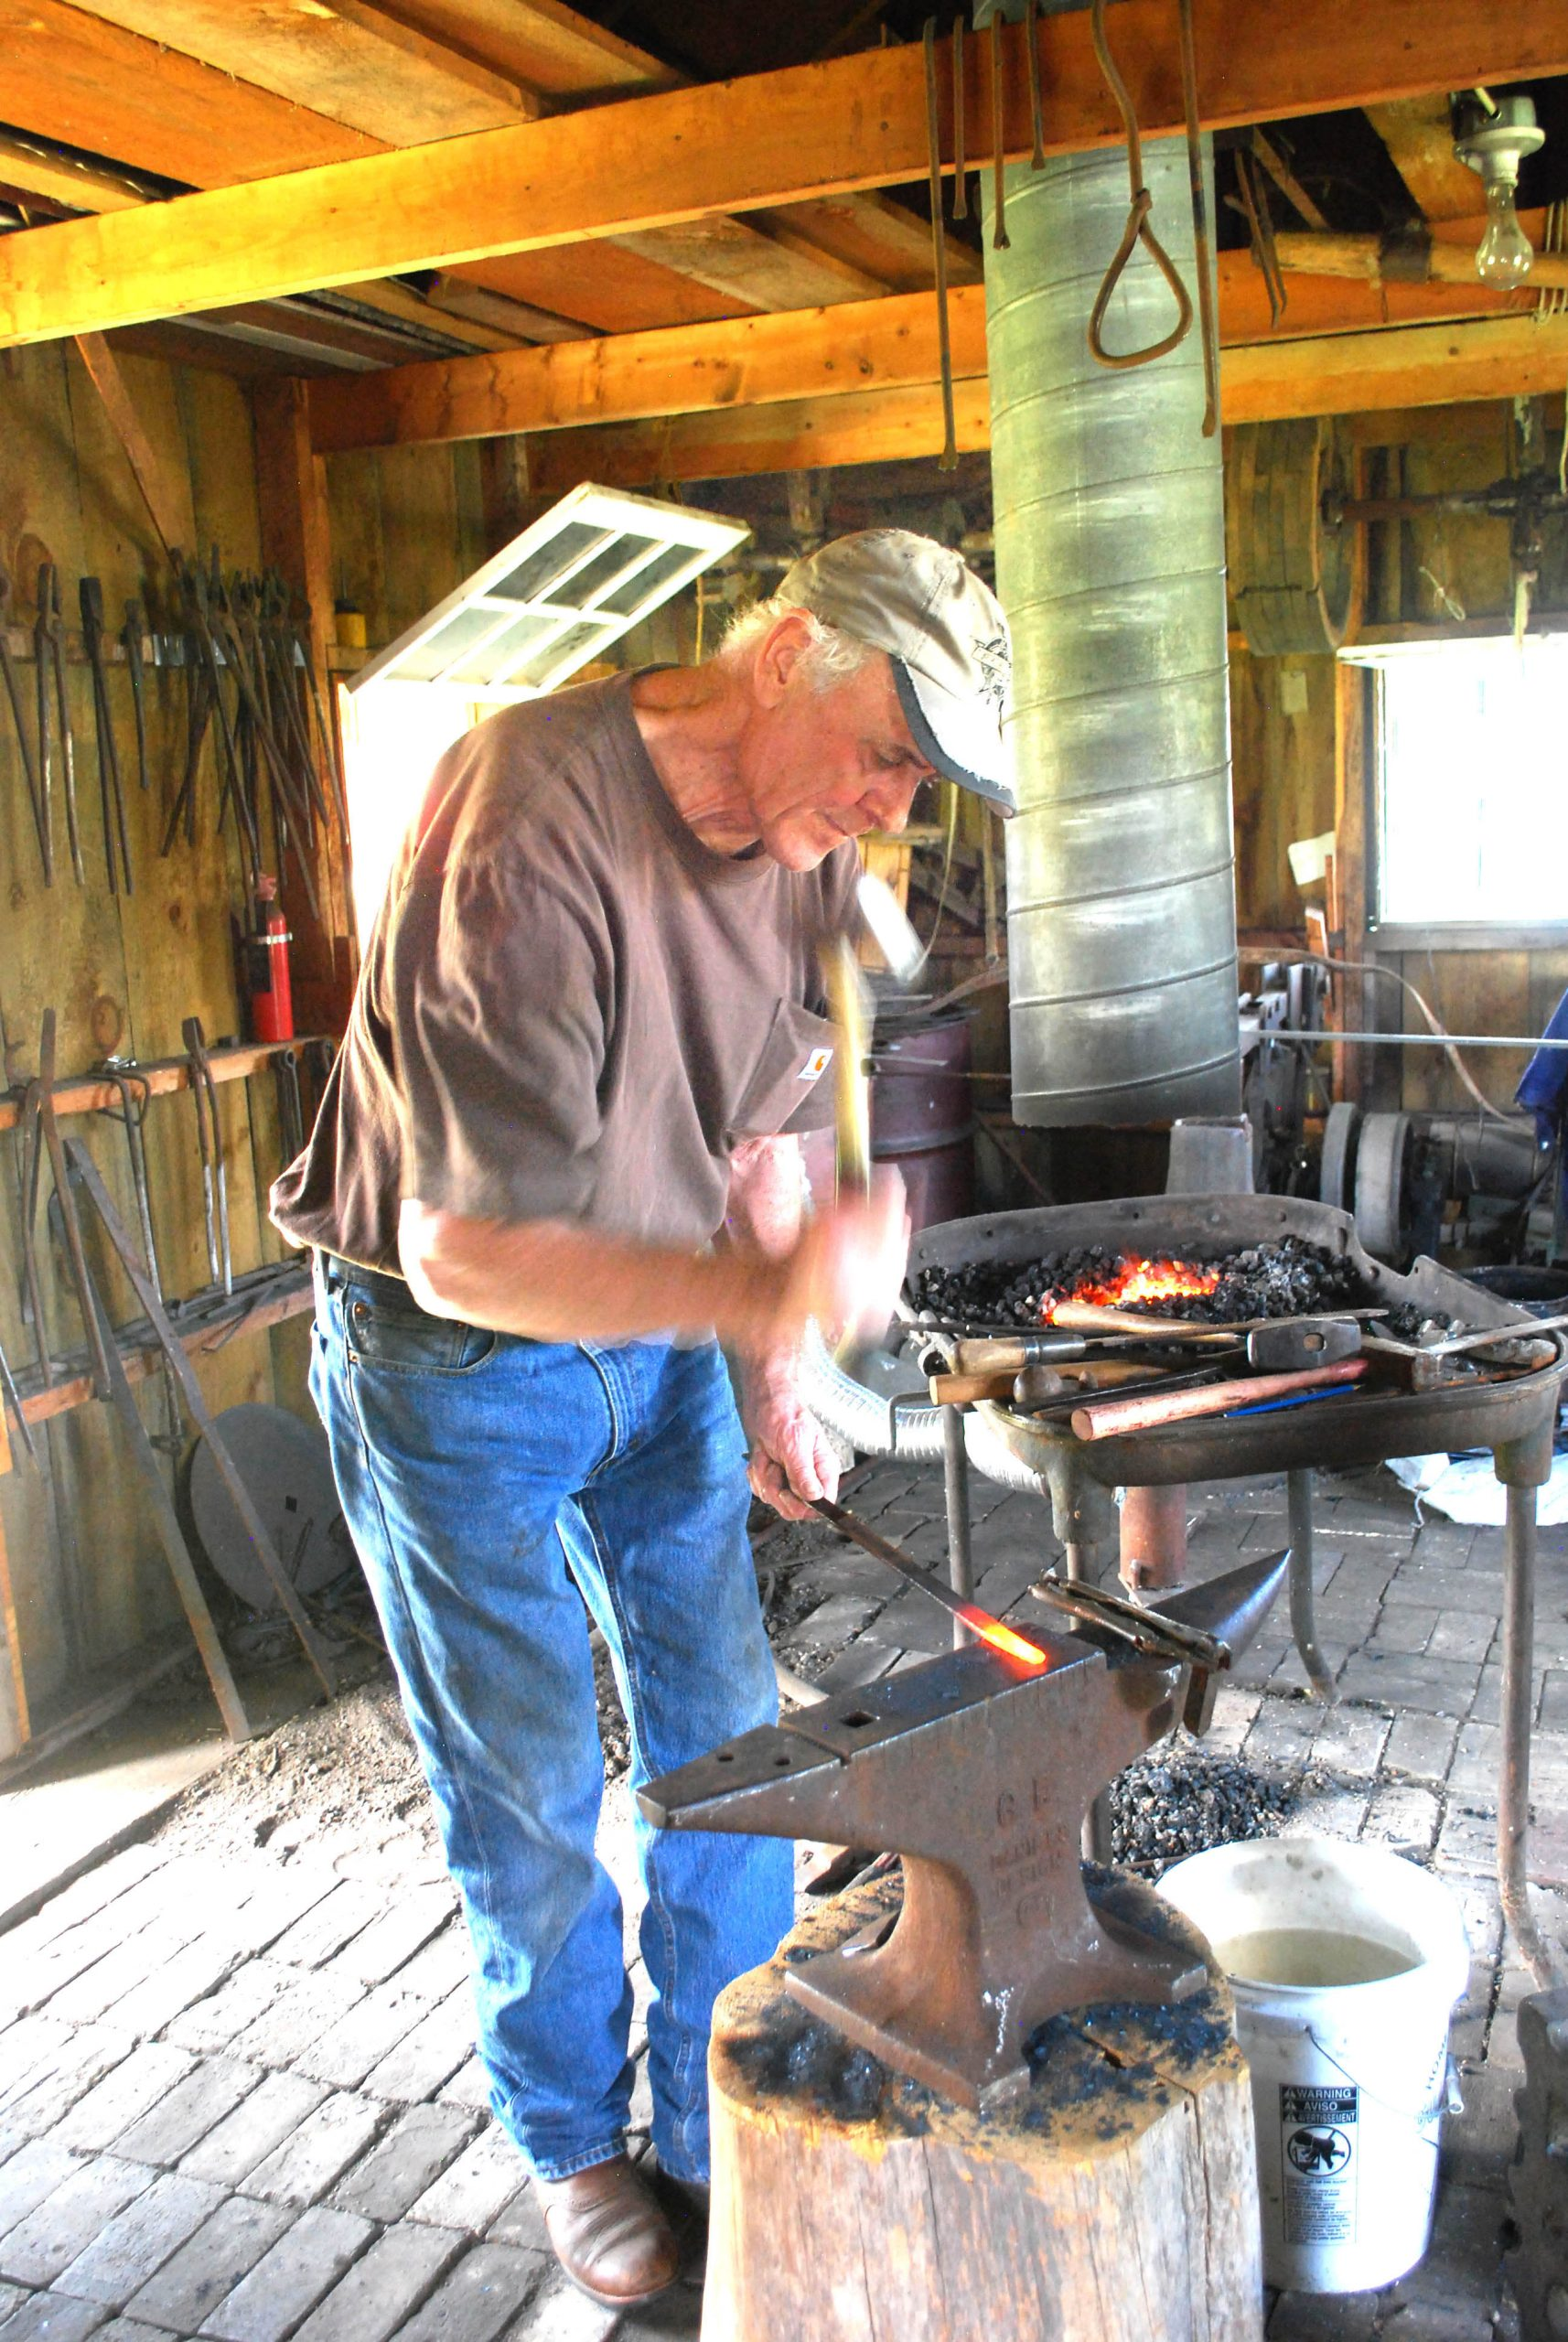 Crookston's Pioneer Day is Living History and Free!